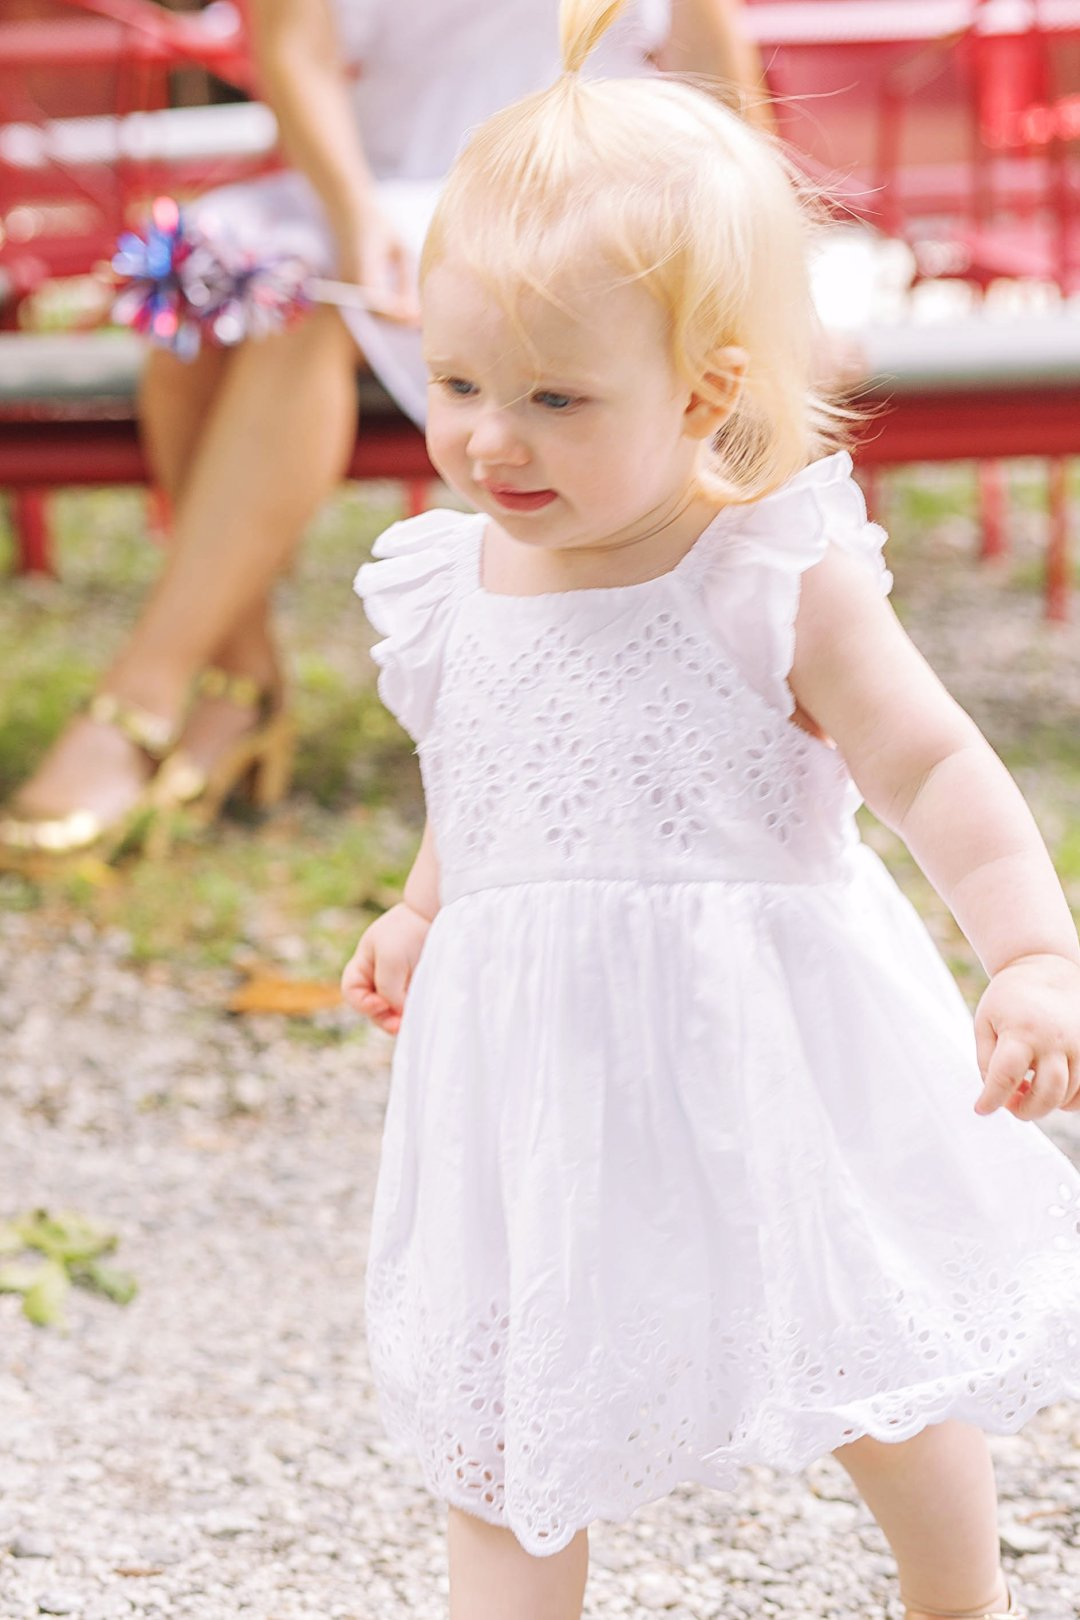 A Day in the Life of a Mommy Blogger by popular blogger Jessica of Happily Hughes